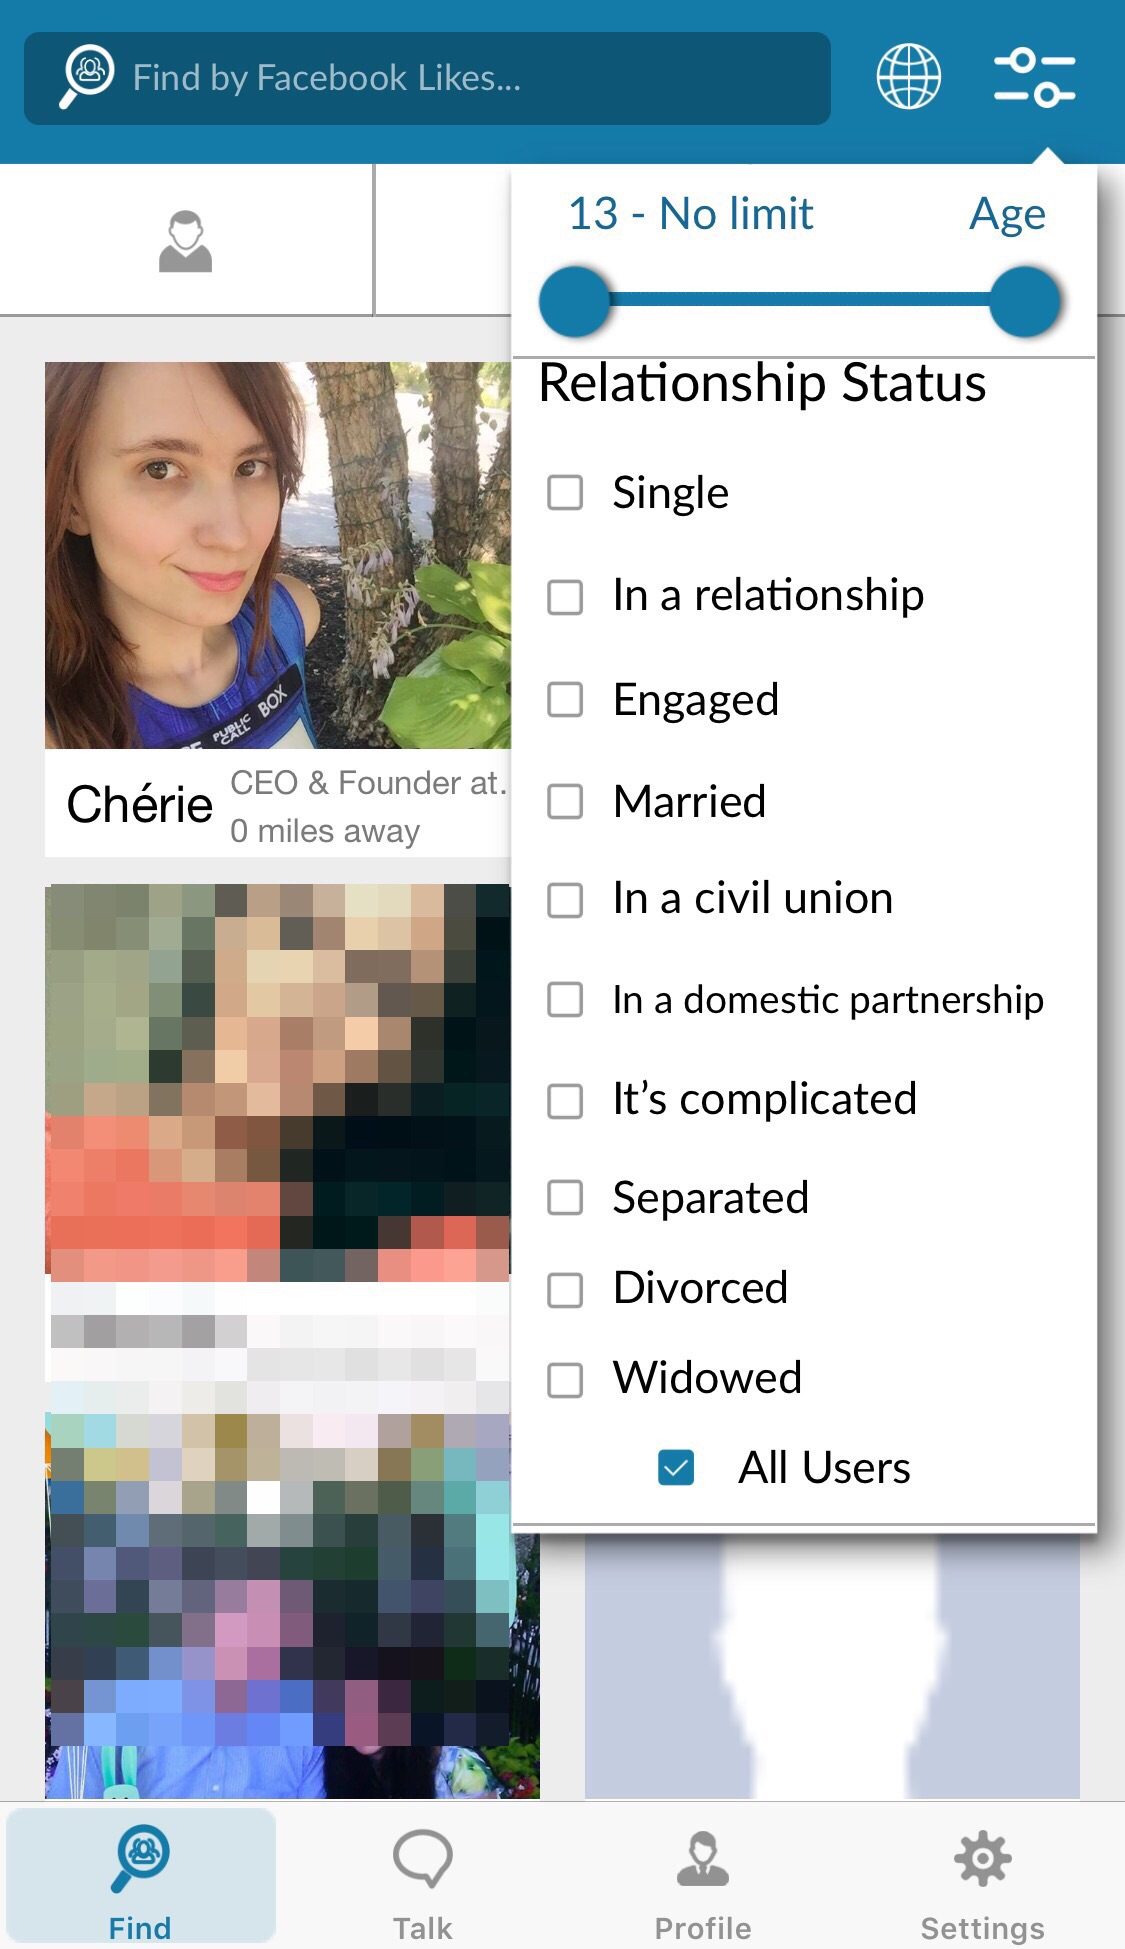 Find - relationship/age search